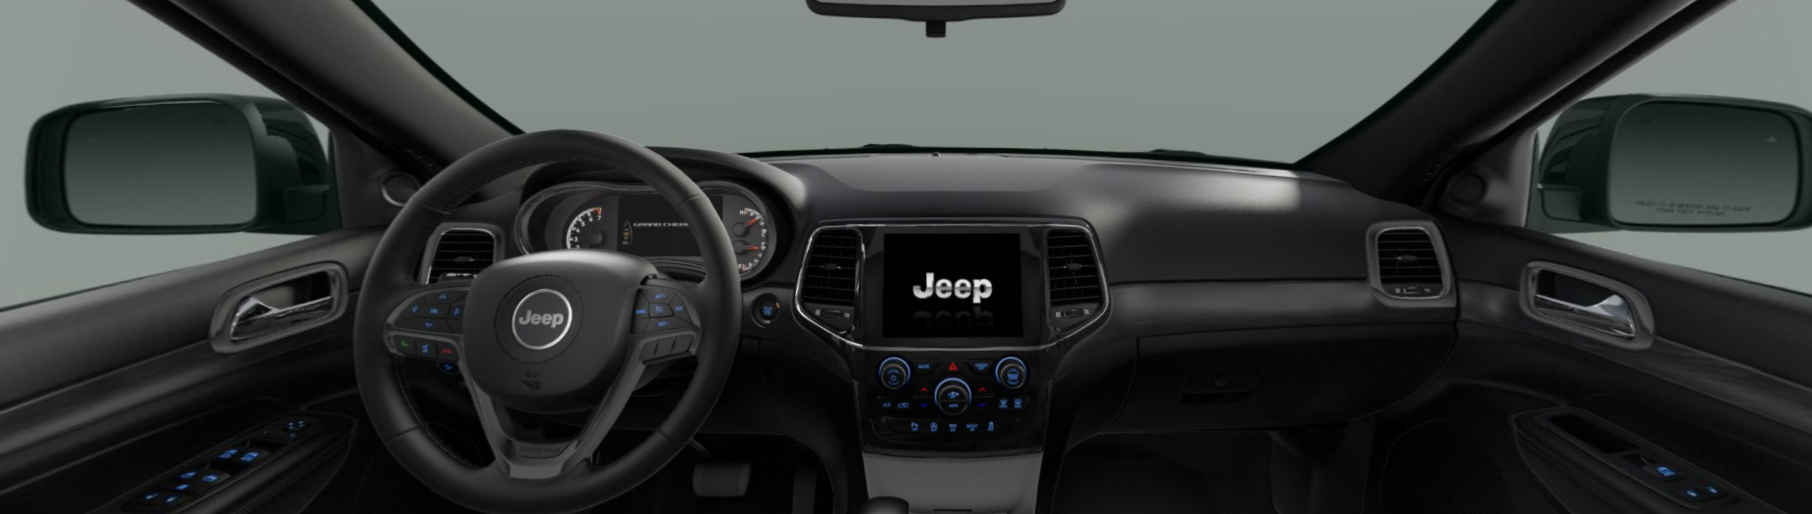 2020 Jeep Grand Cherokee Altitude Front Interior Dash.png